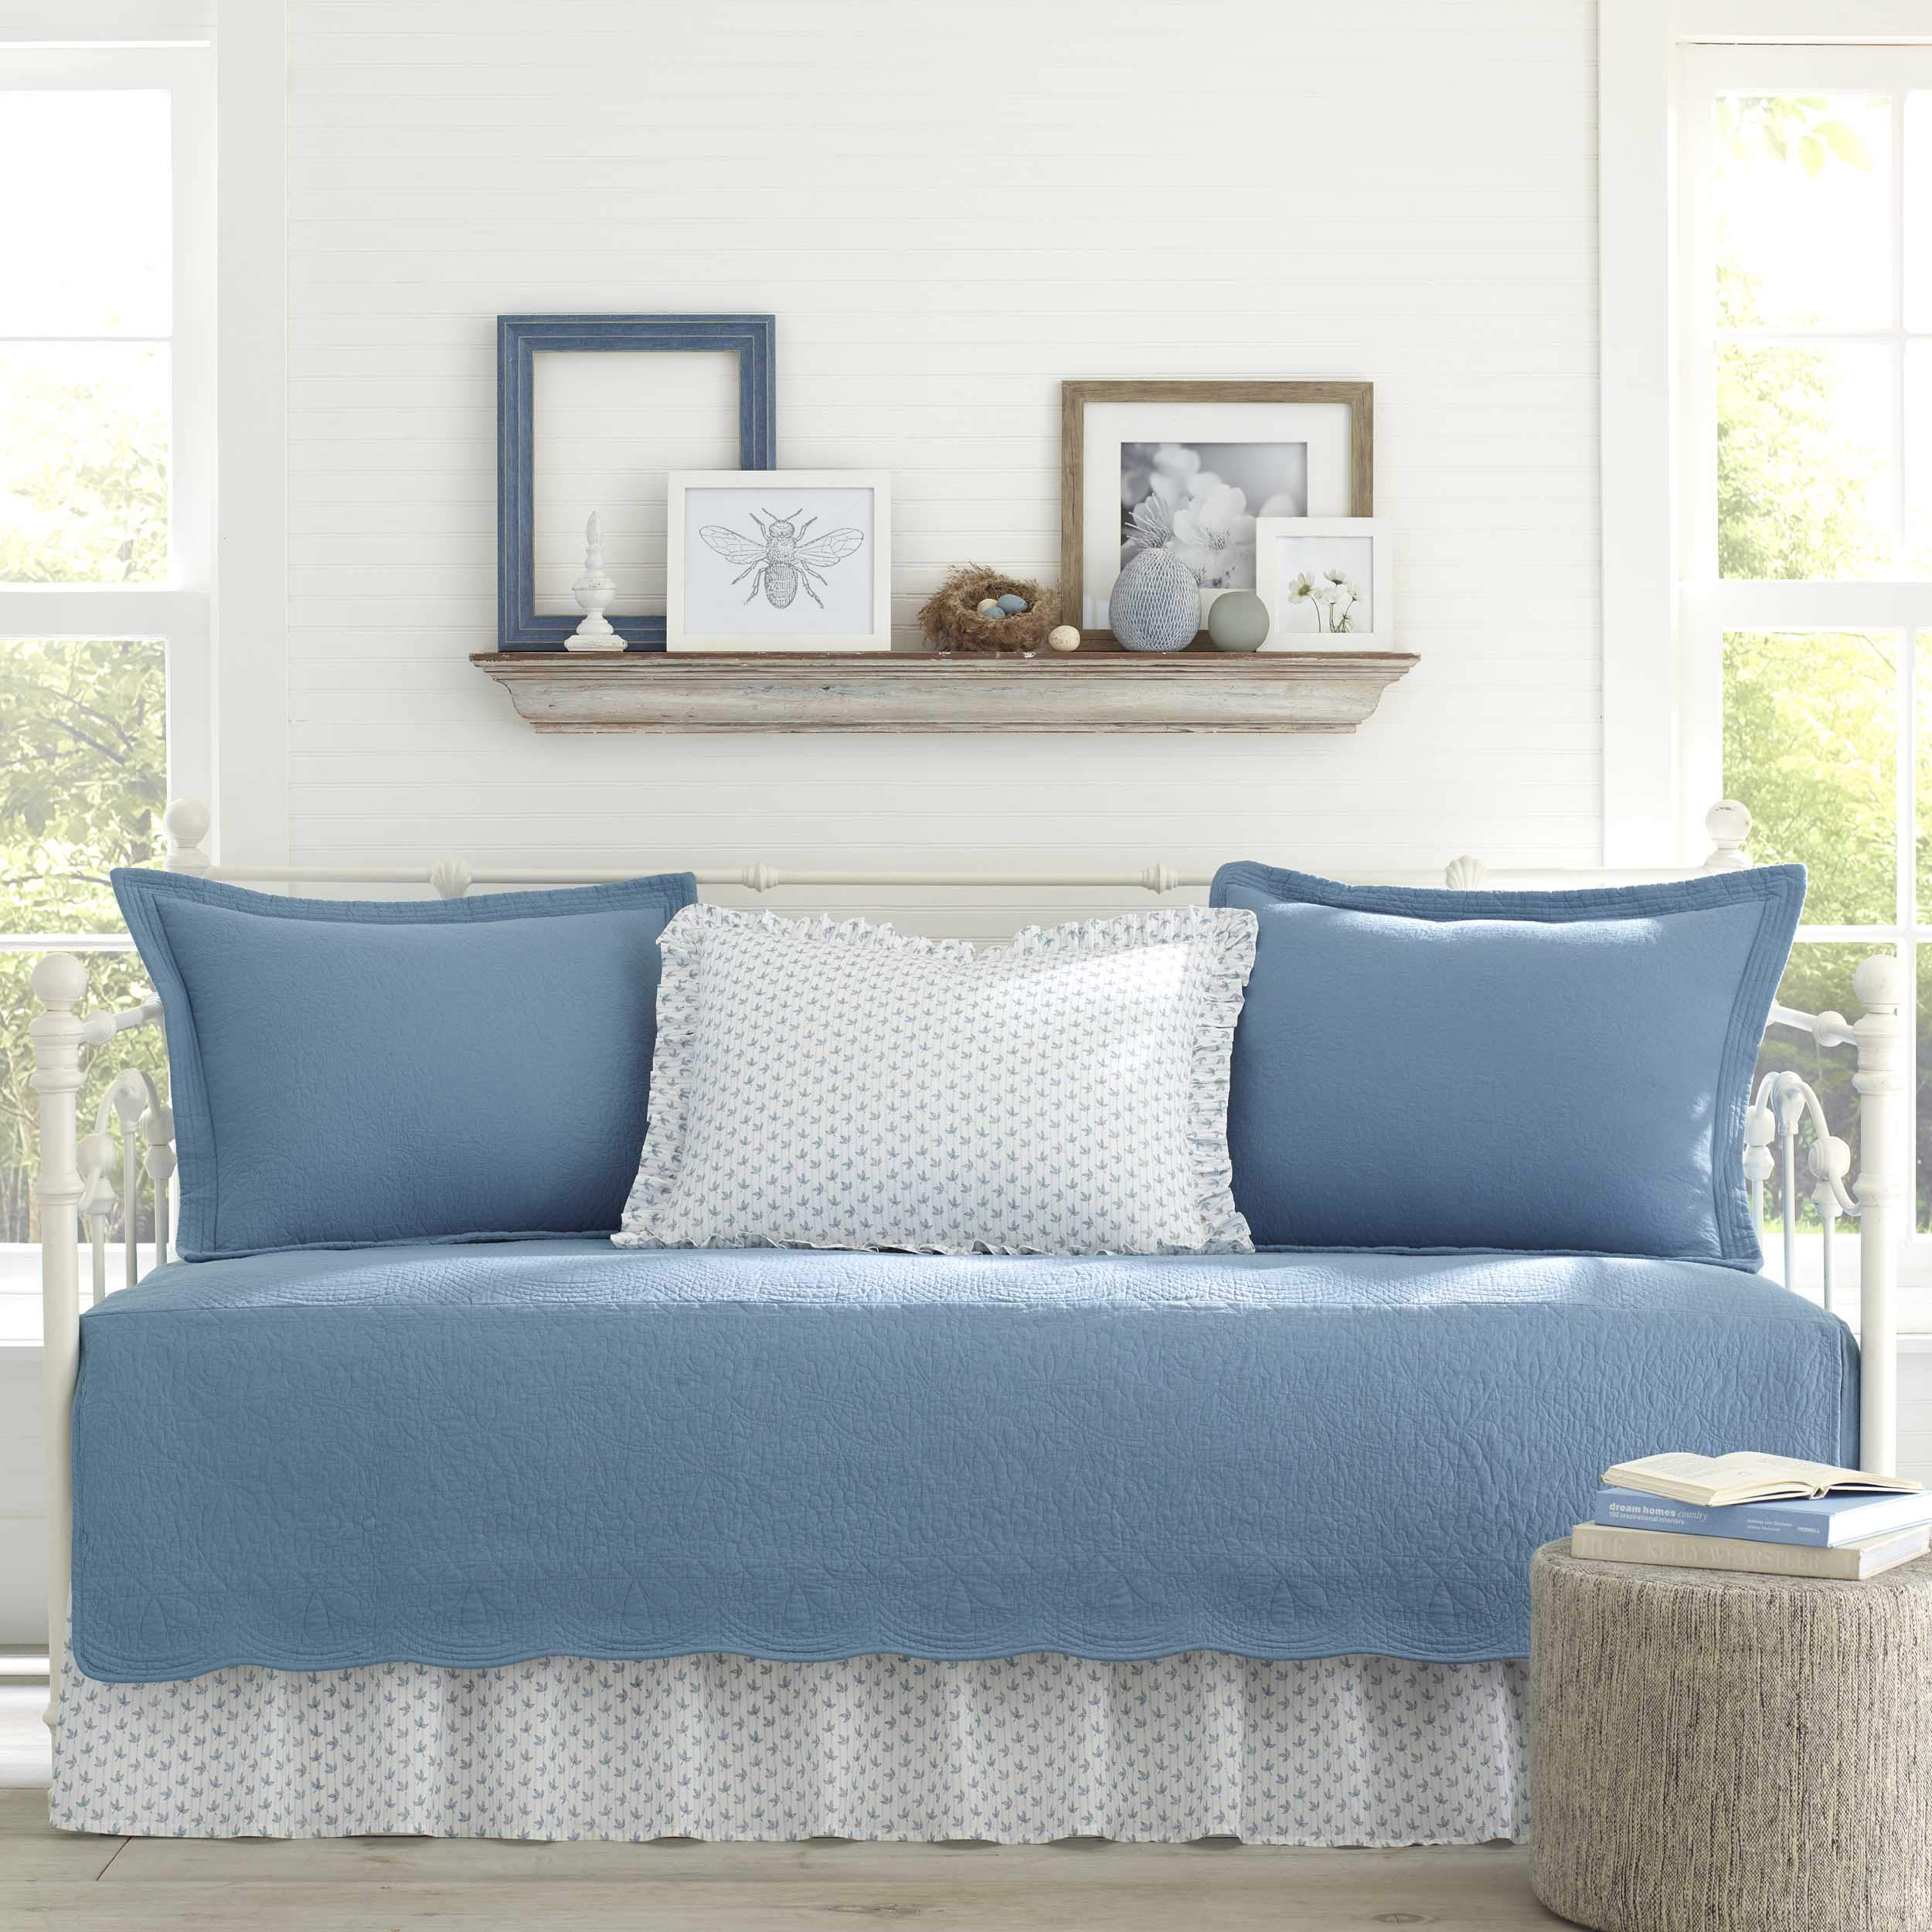 Stone Cottage Trellis Daybed Set, 39x75, Blue by Stone Cottage (Image #2)